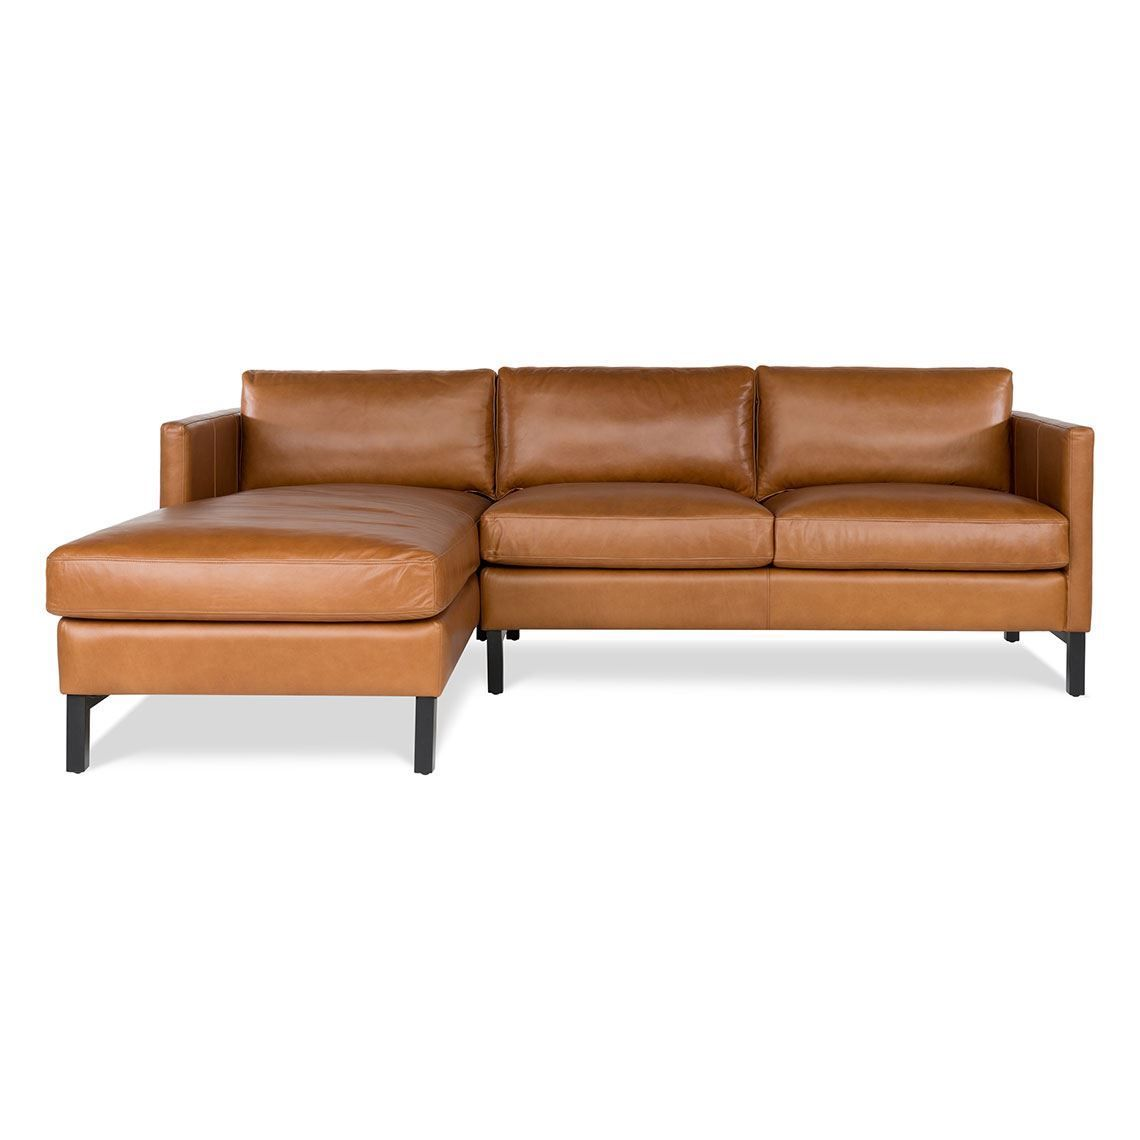 Atelier 3 Seat Leather Modular Sofa With Left Chaise in 2019 ...